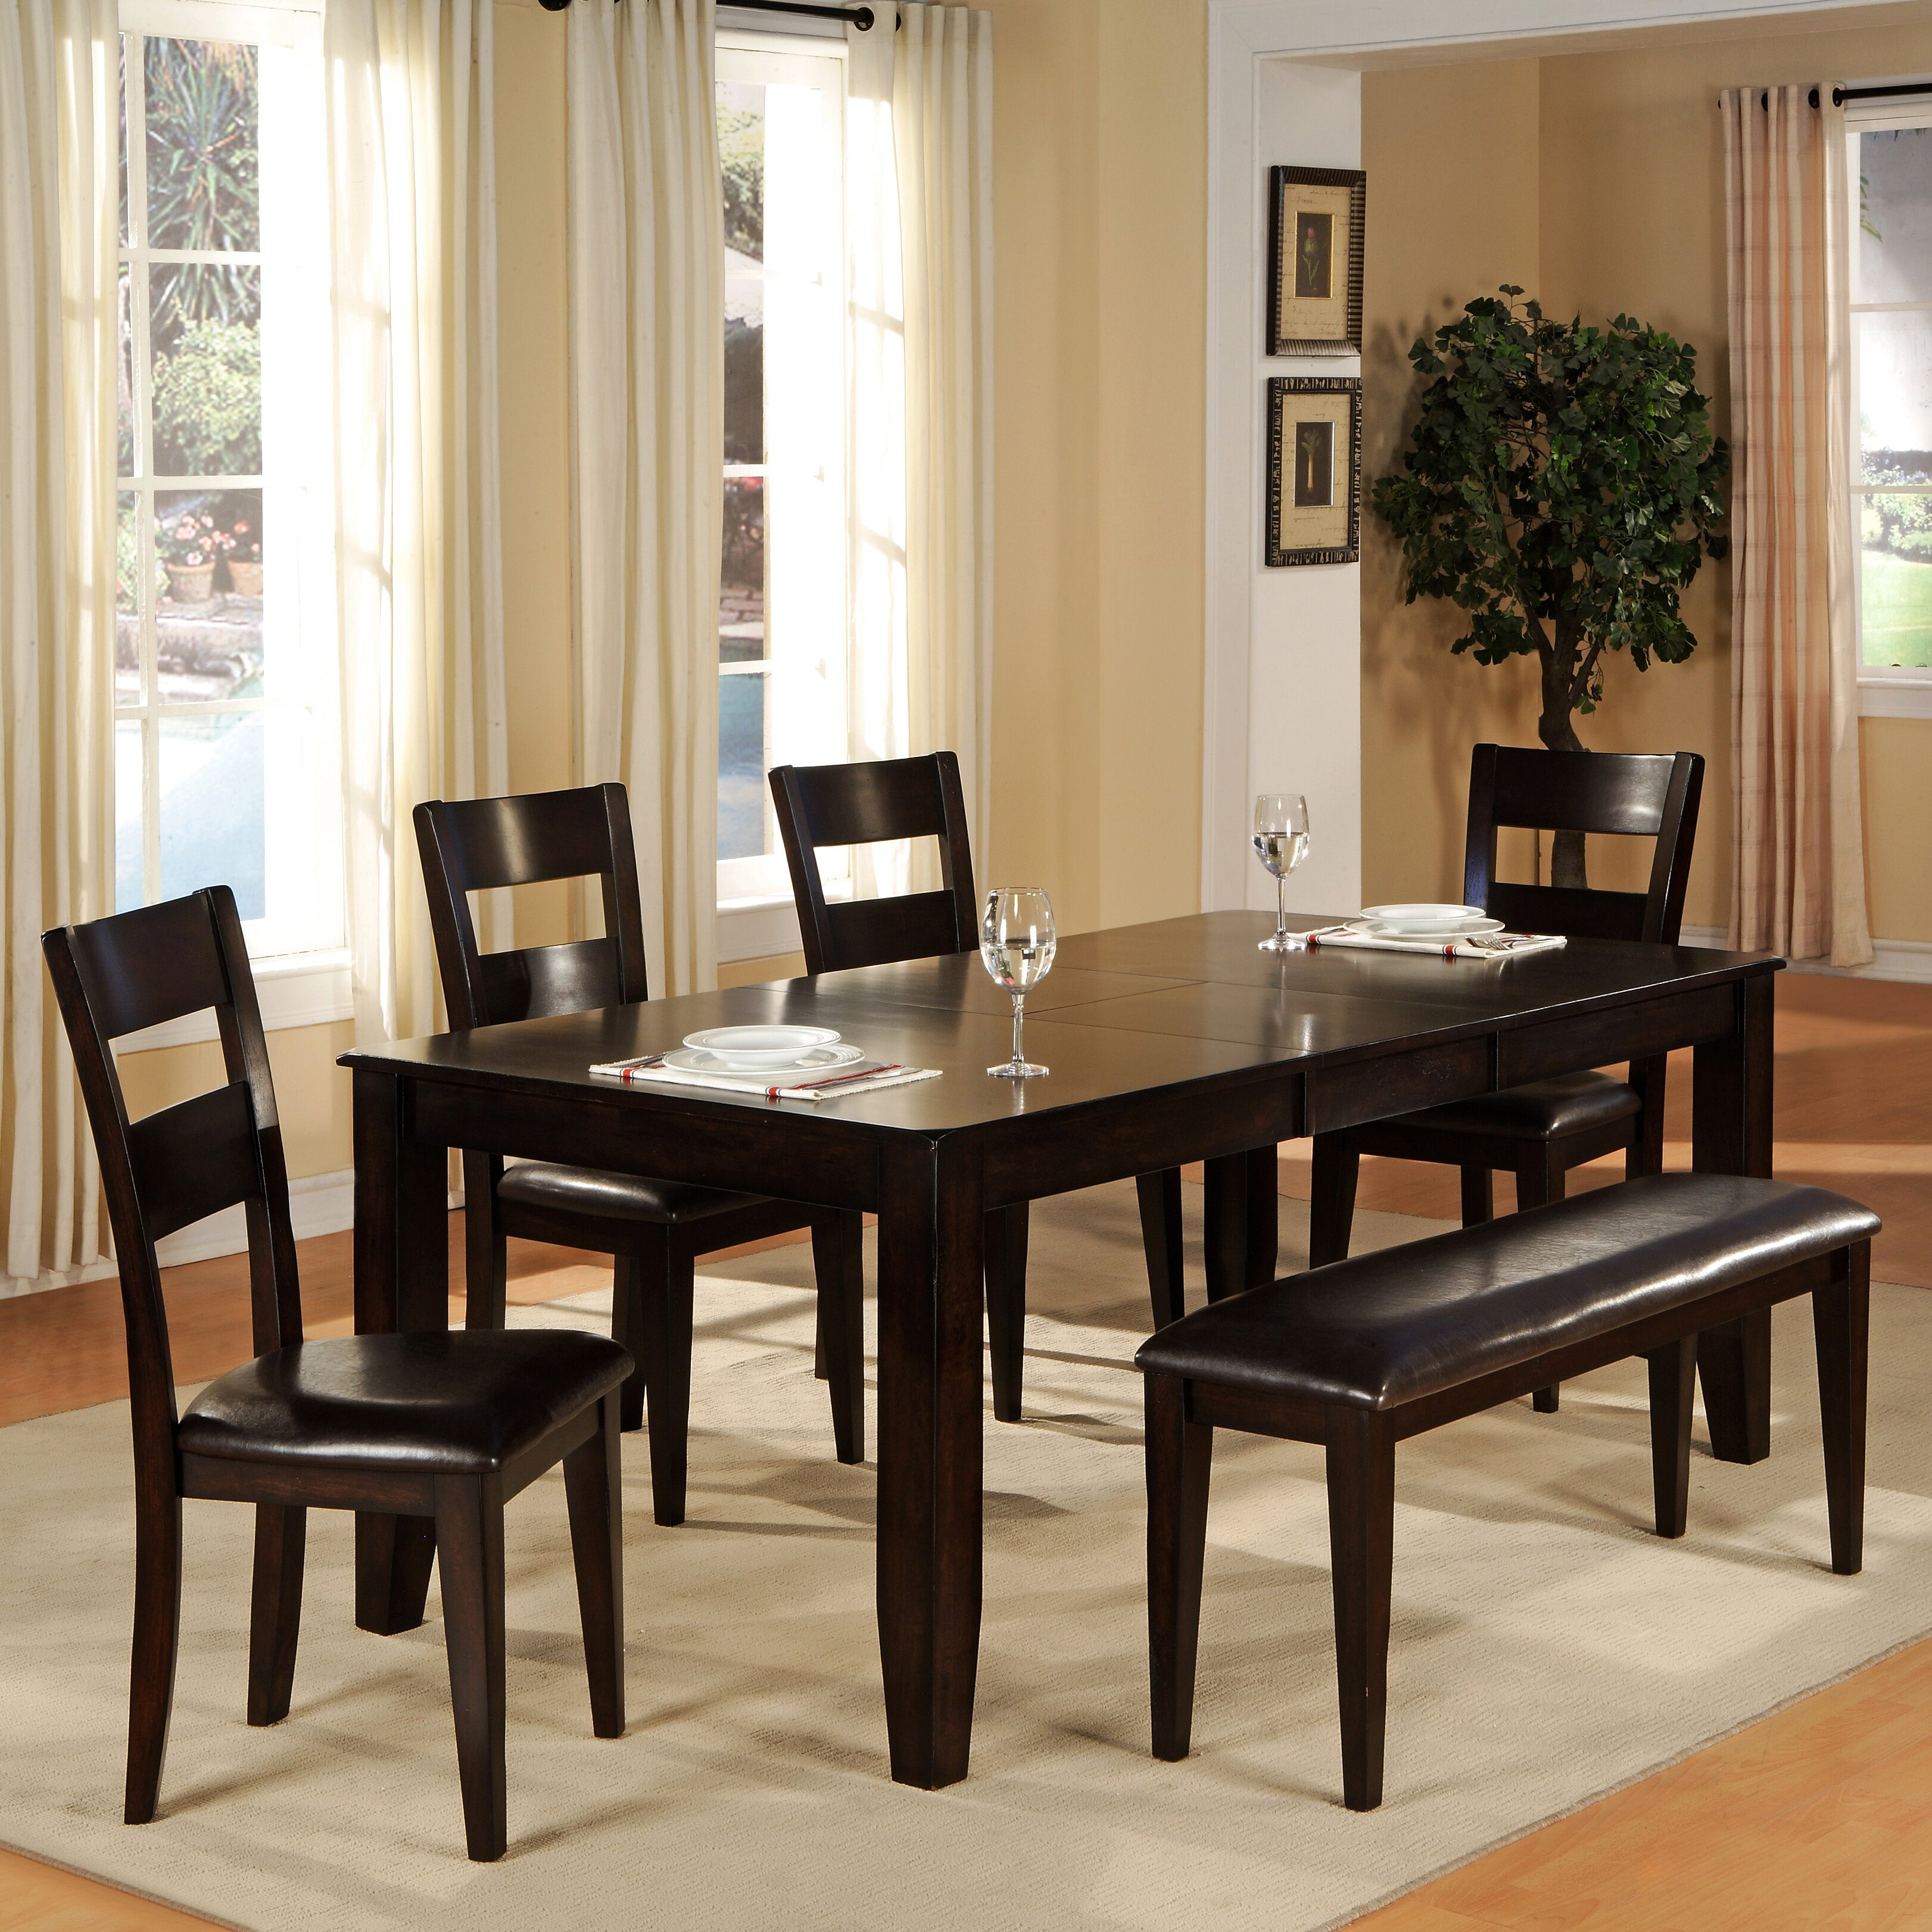 Wildon home extendable dining table reviews for Wildon home dining